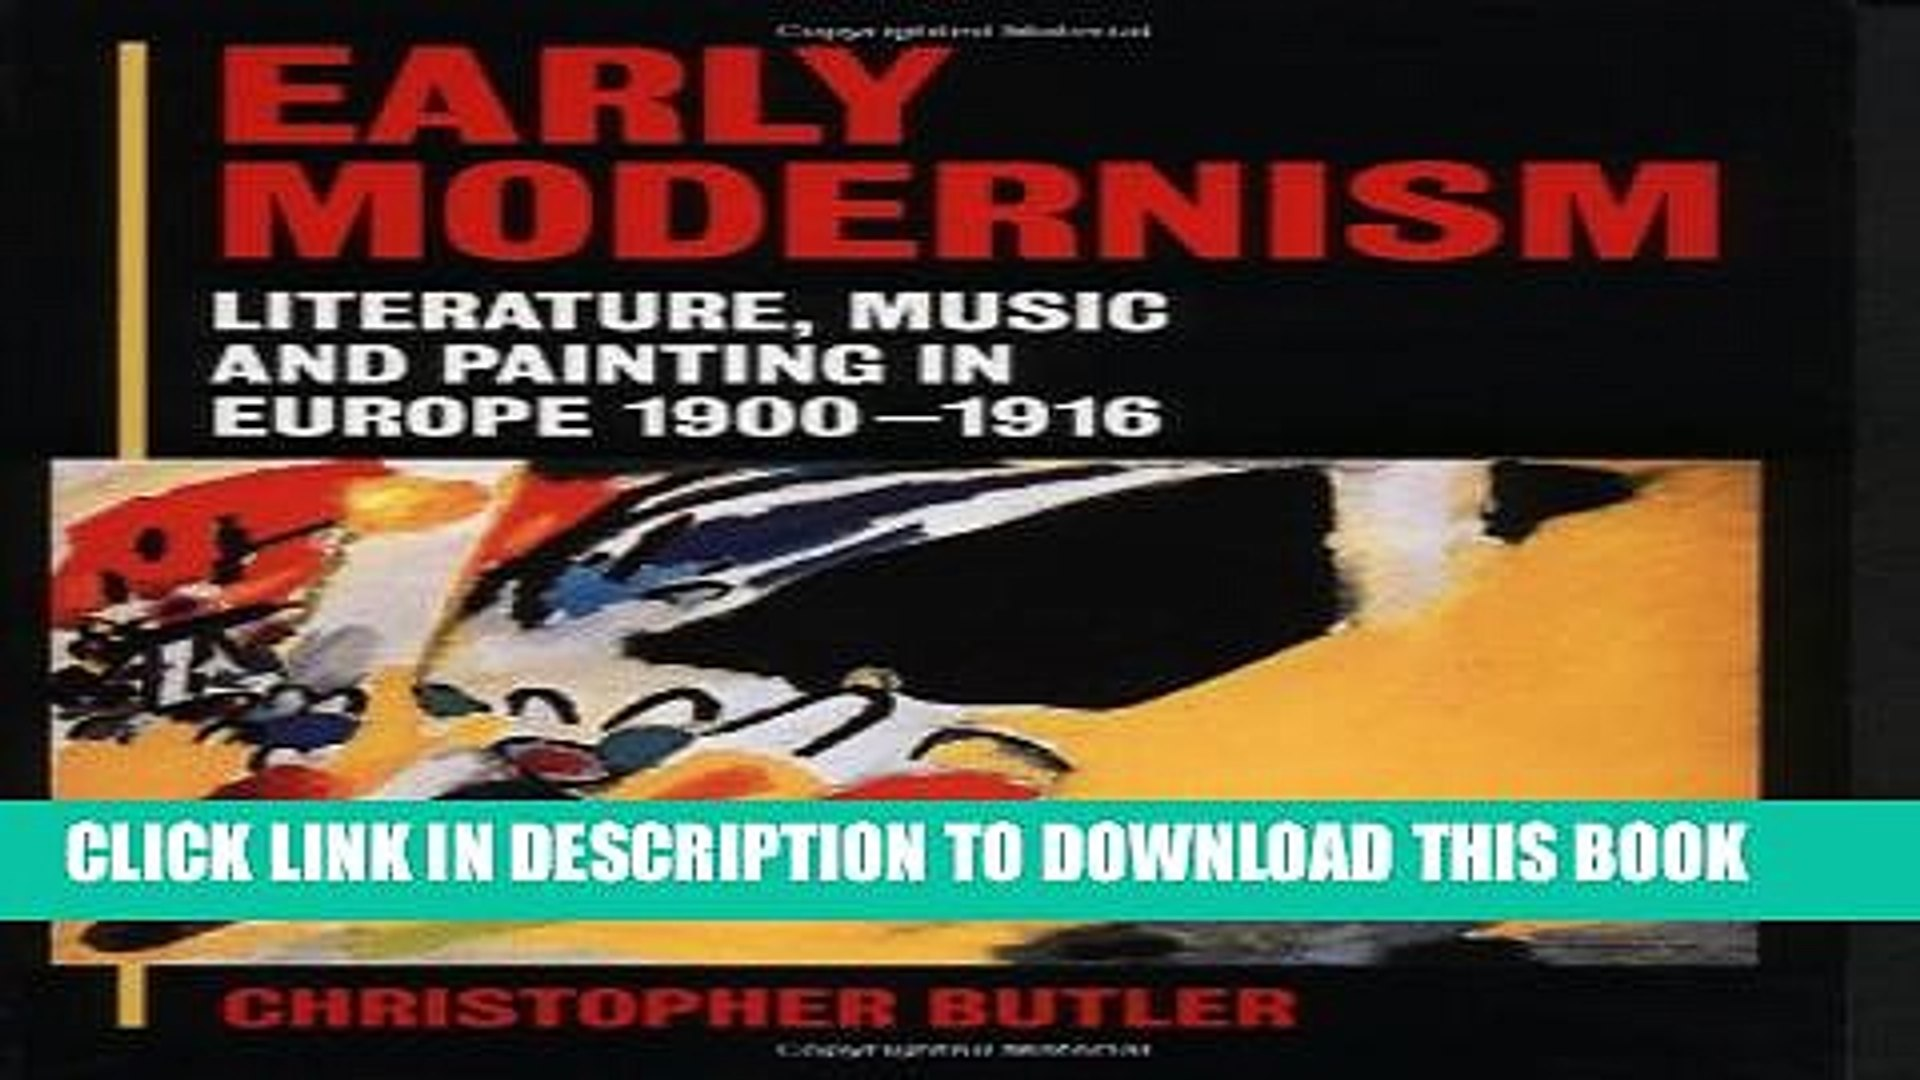 [PDF] Early Modernism: Literature, Music, and Painting in Europe, 1900-1916 Full Online